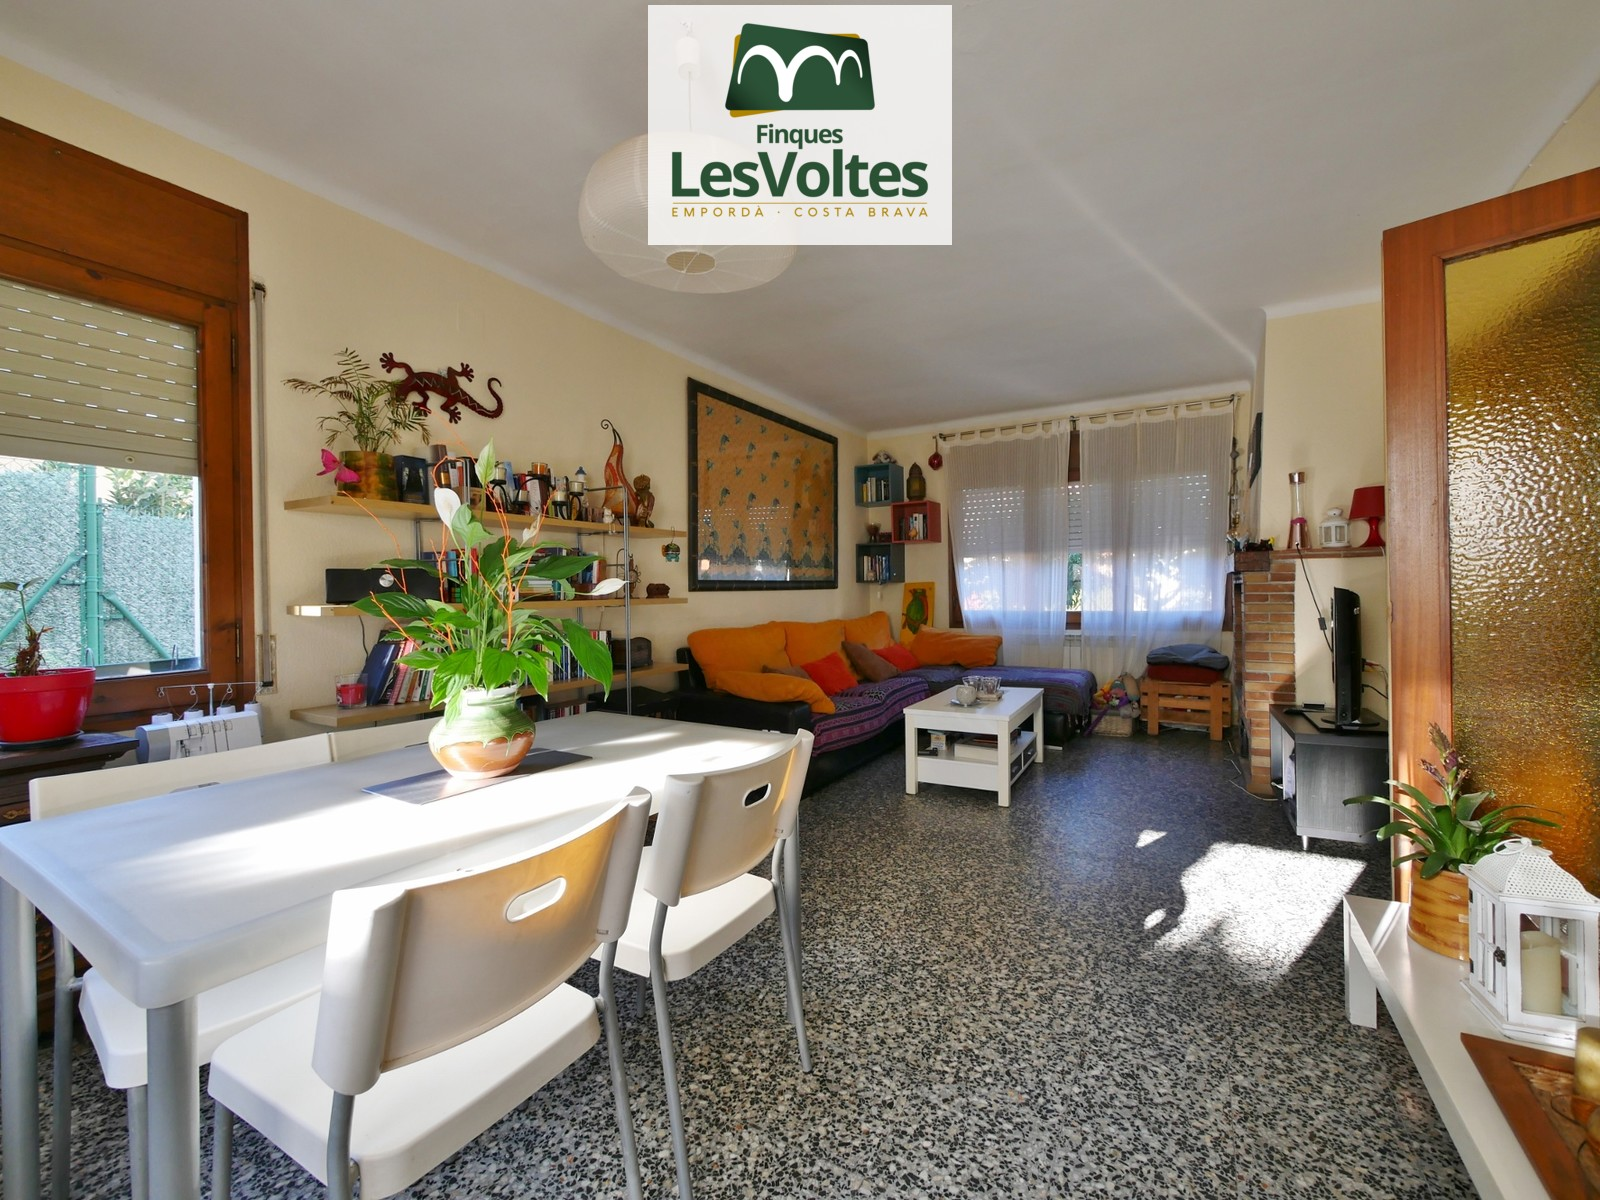 HOUSE WITH TWO FLOORS OF 129 M2 WITH GARAGE, TERRACE AND PATIO FOR SALE IN LA BISBAL D'EMPORDÀ